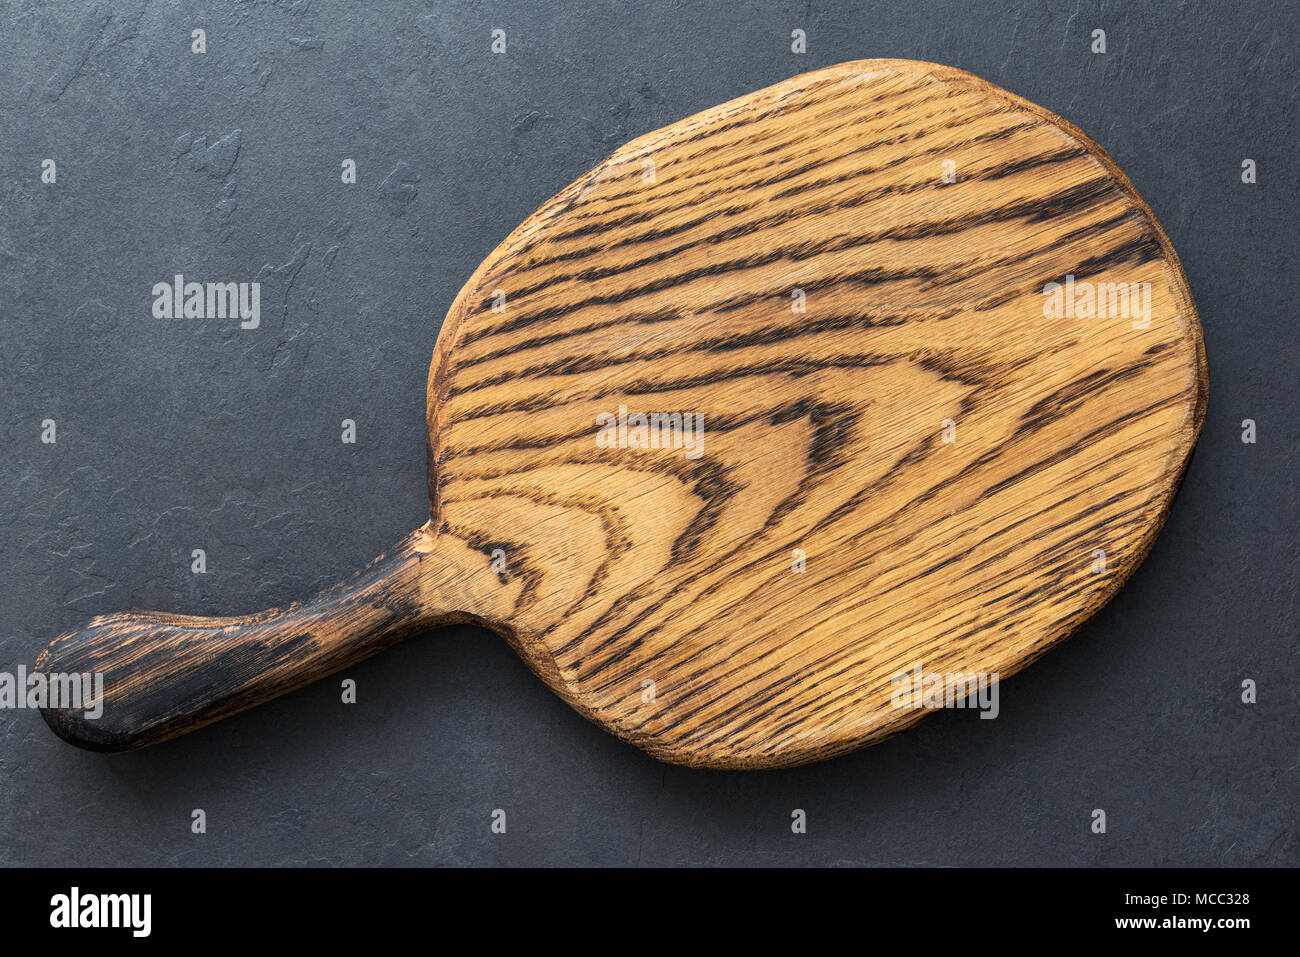 Wooden cutting board on slate background, top view with copy space for text. Horizontal composition - Stock Image